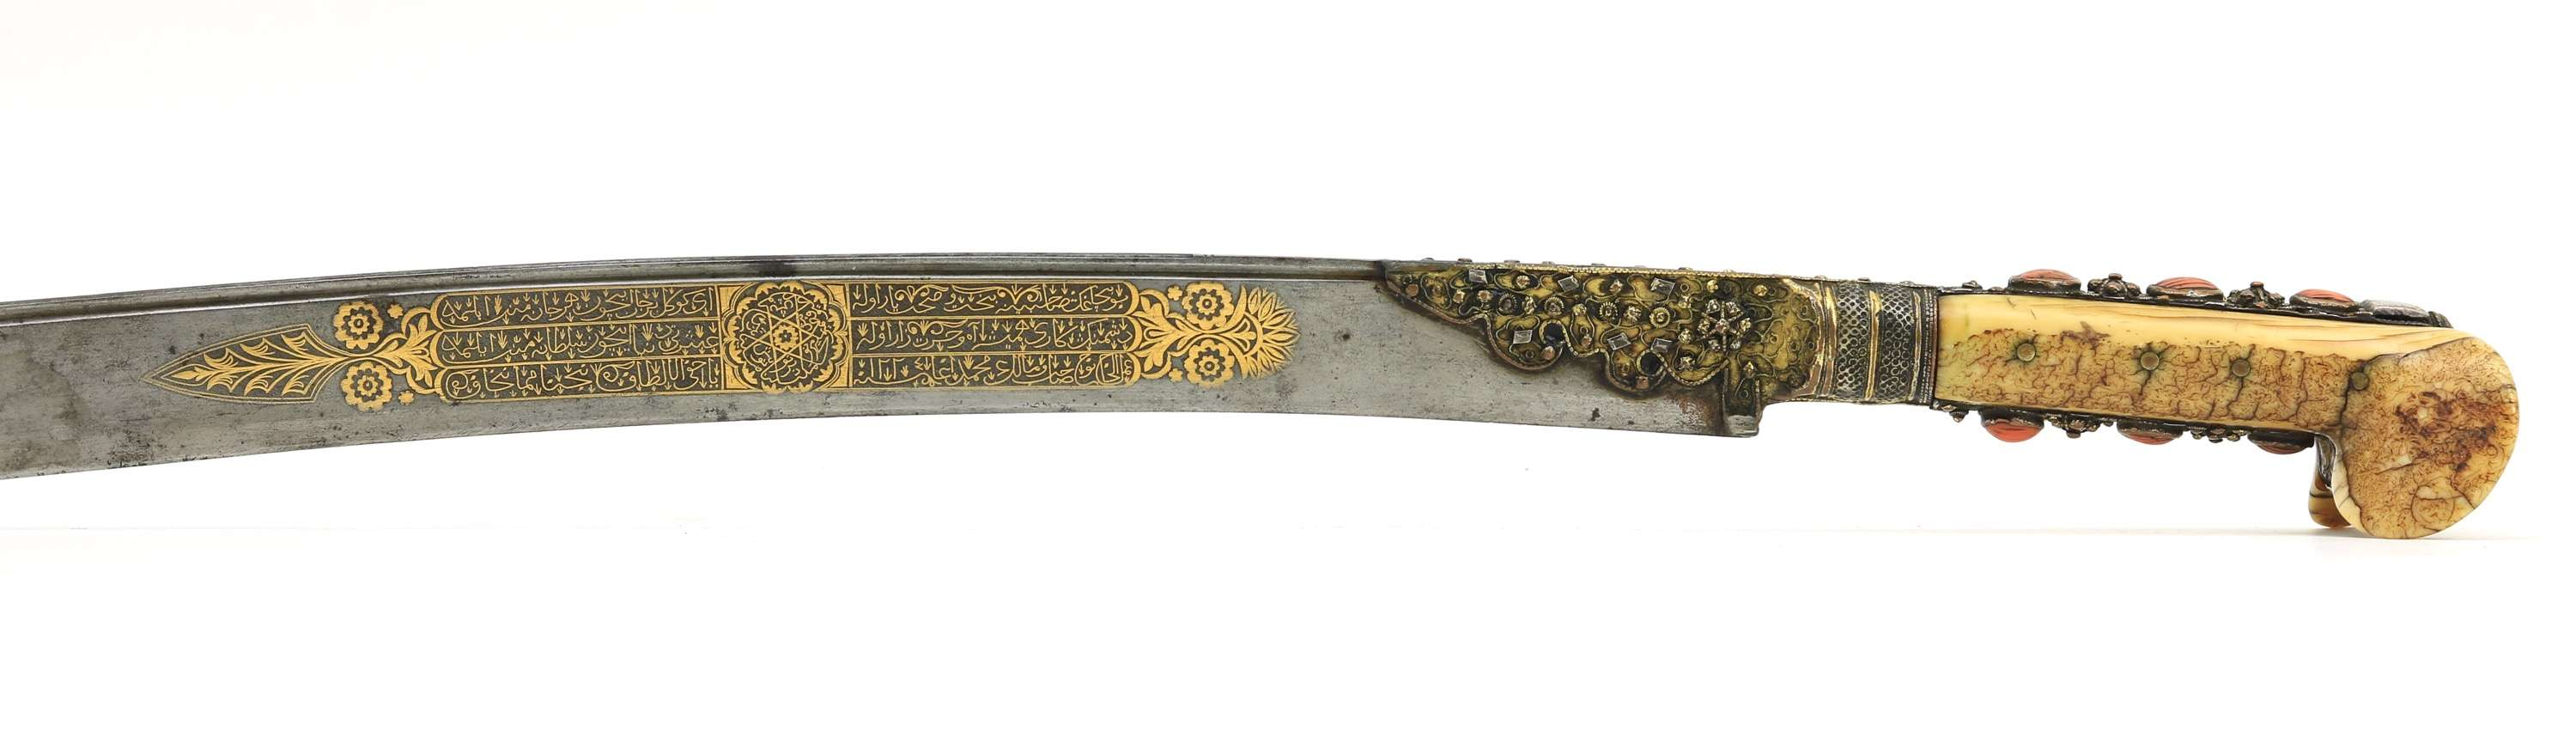 Fine Ottoman yatagan dated 1809